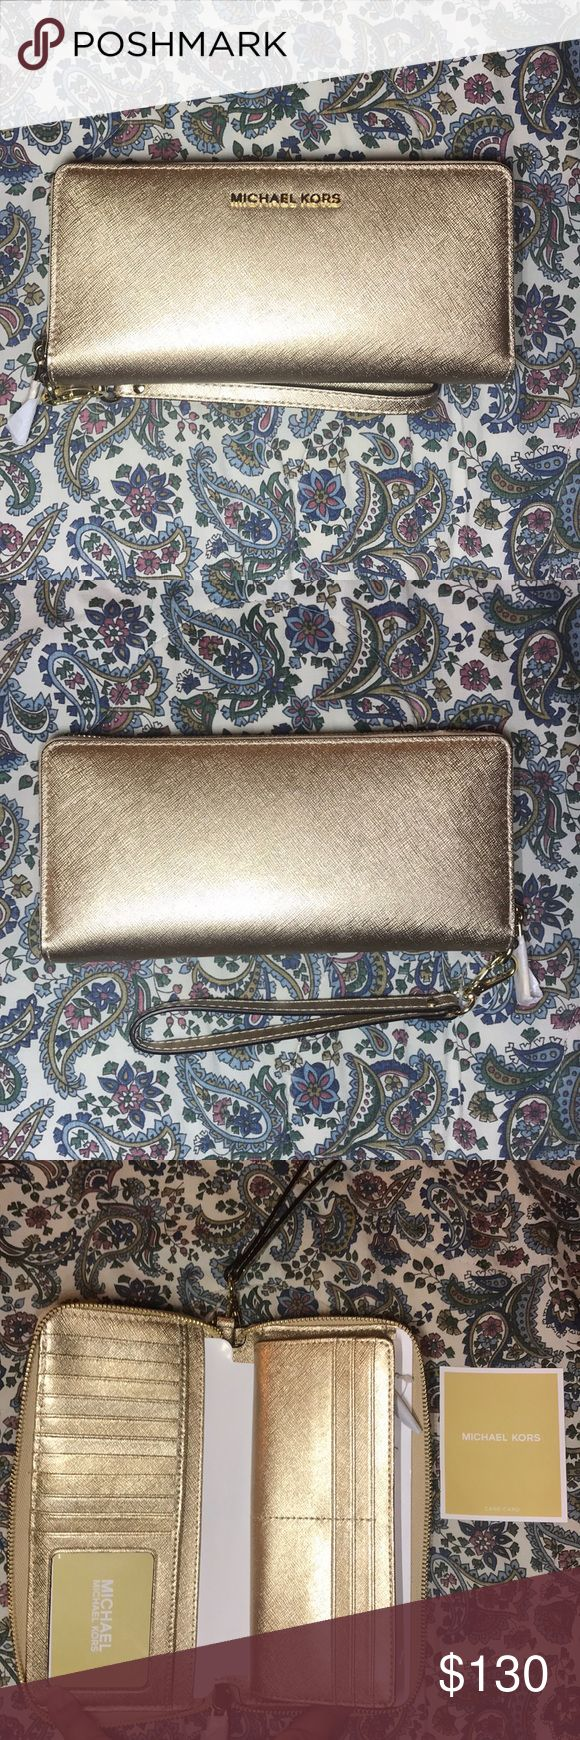 Michael Kors Jet Set Travel wallet This is a beautiful gold shimmery Michael Kors Jet Set Travel Continental leather wallet. NWT! NBW! MICHAEL Michael Kors Bags Wallets